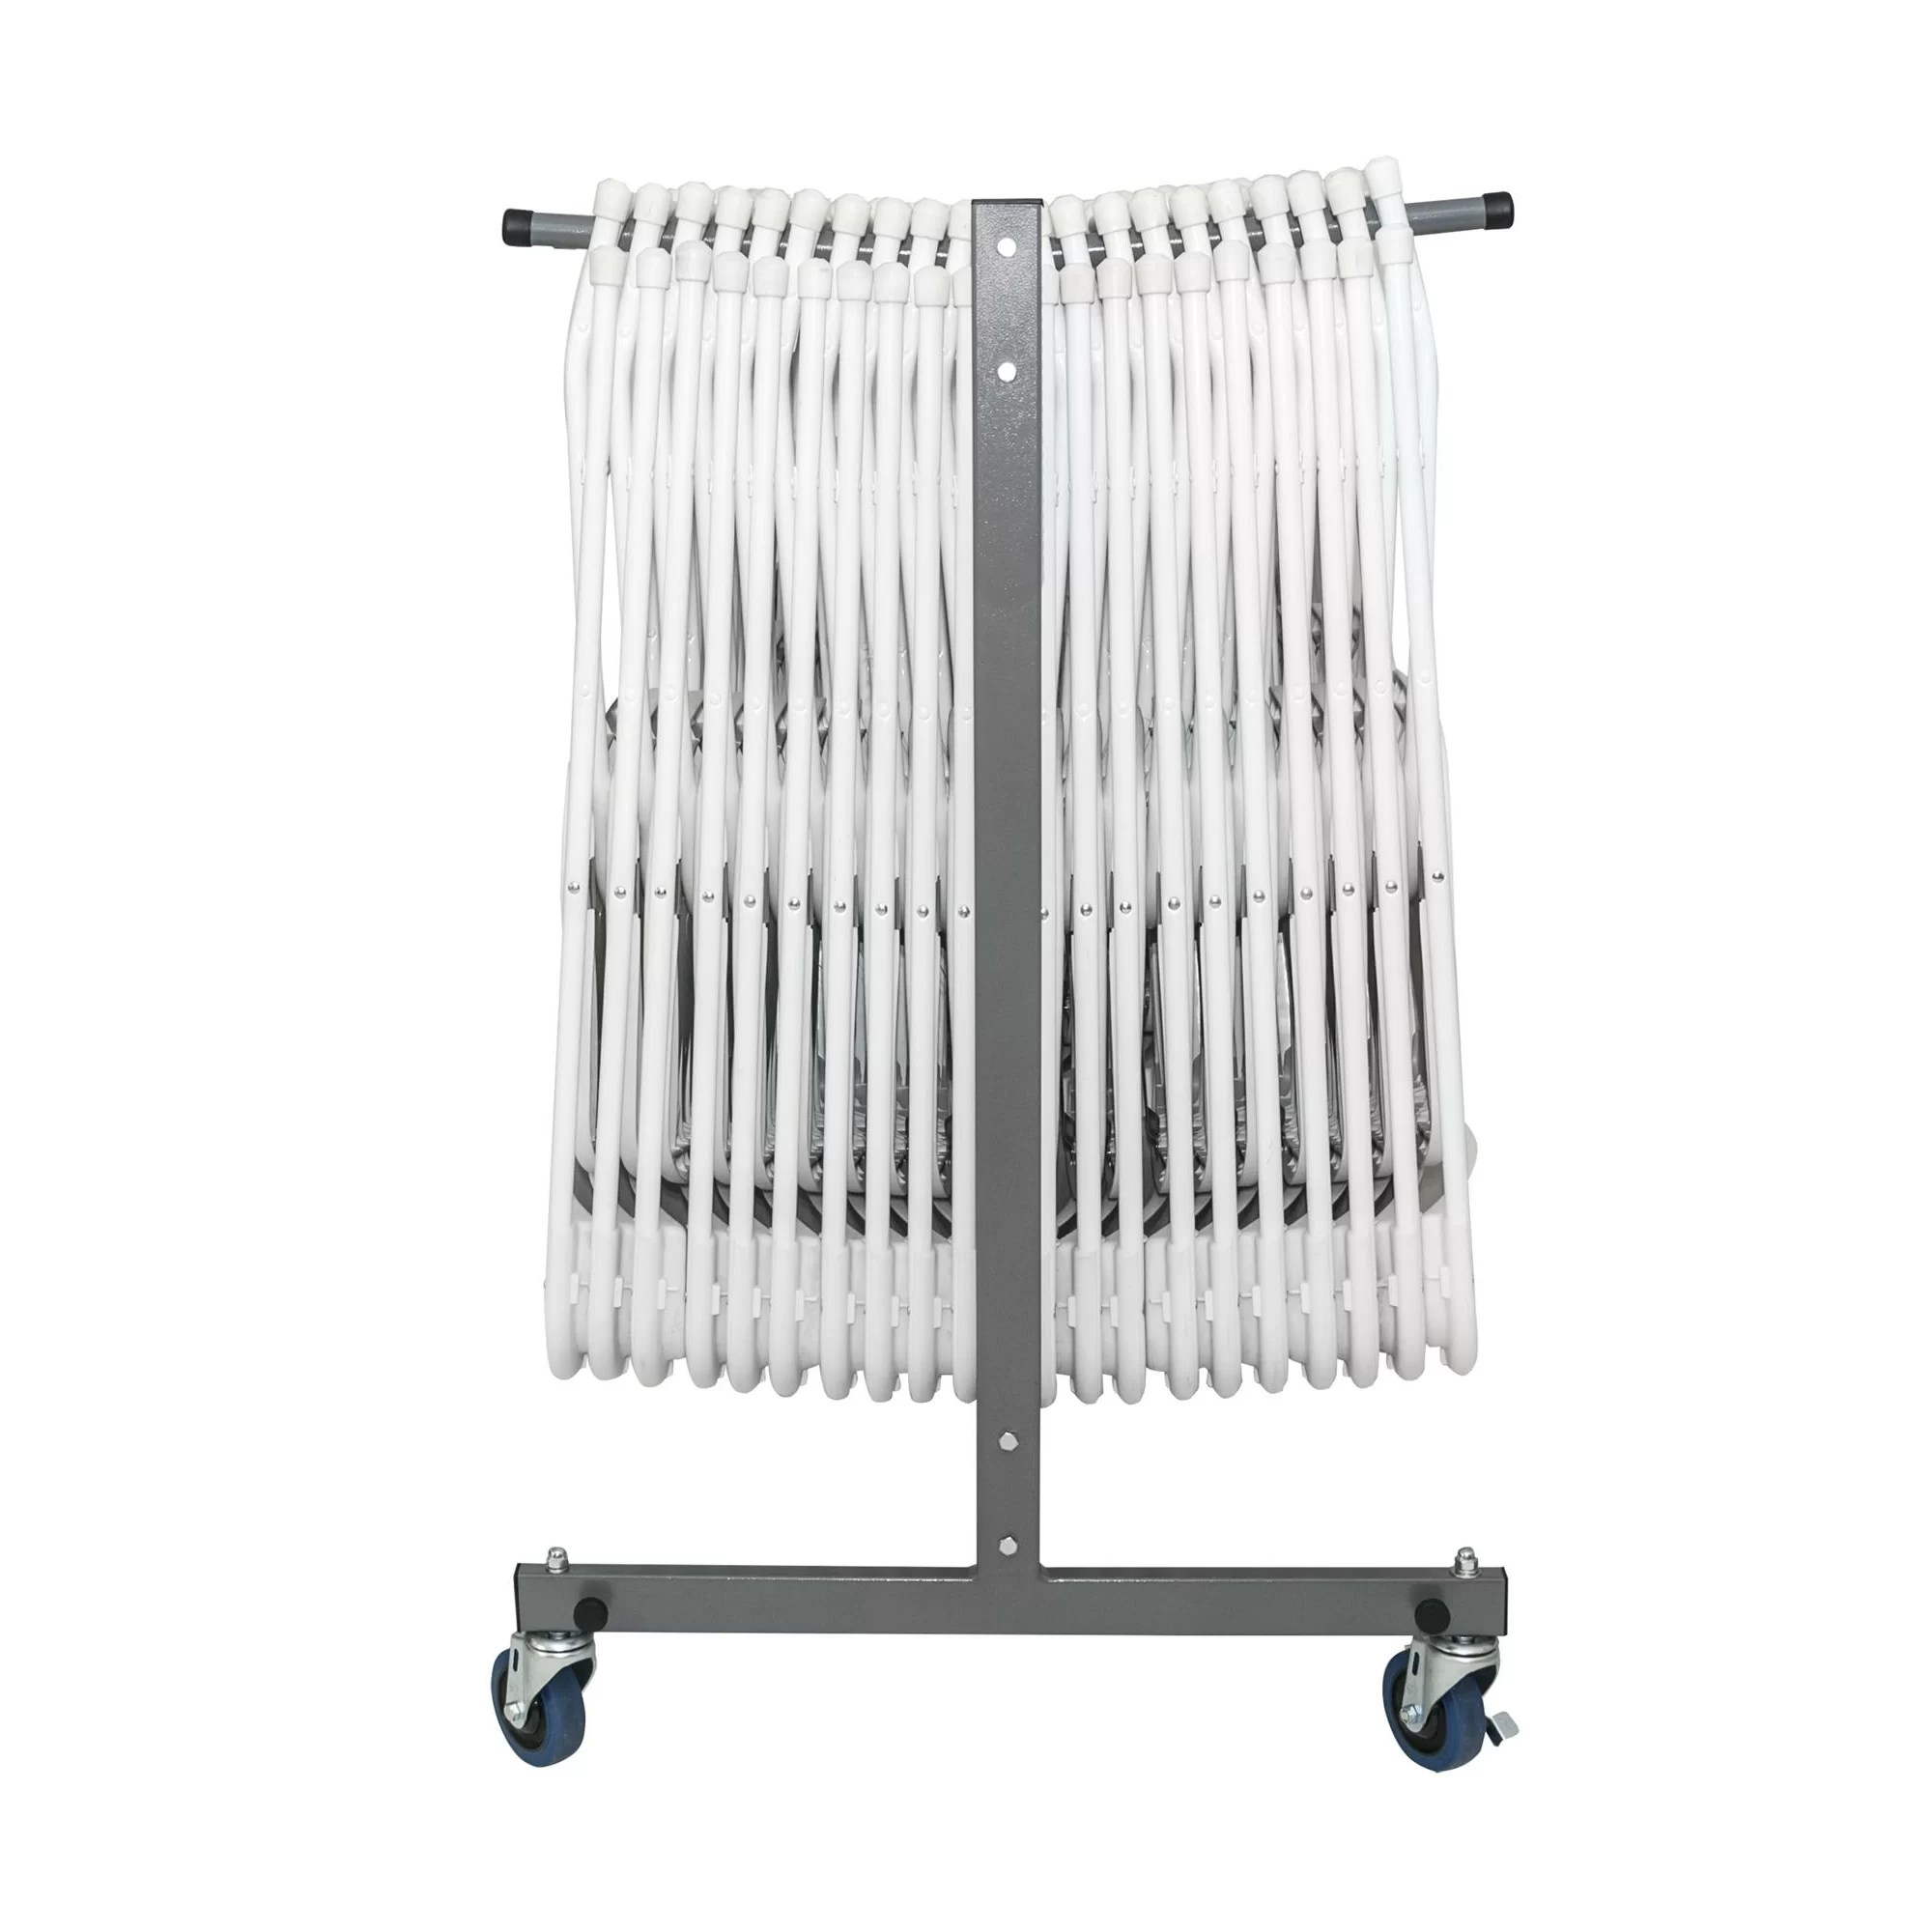 folding chair with wheels special needs bath cosco home and office classic 48 6 quot x 68 9 31 1 gray